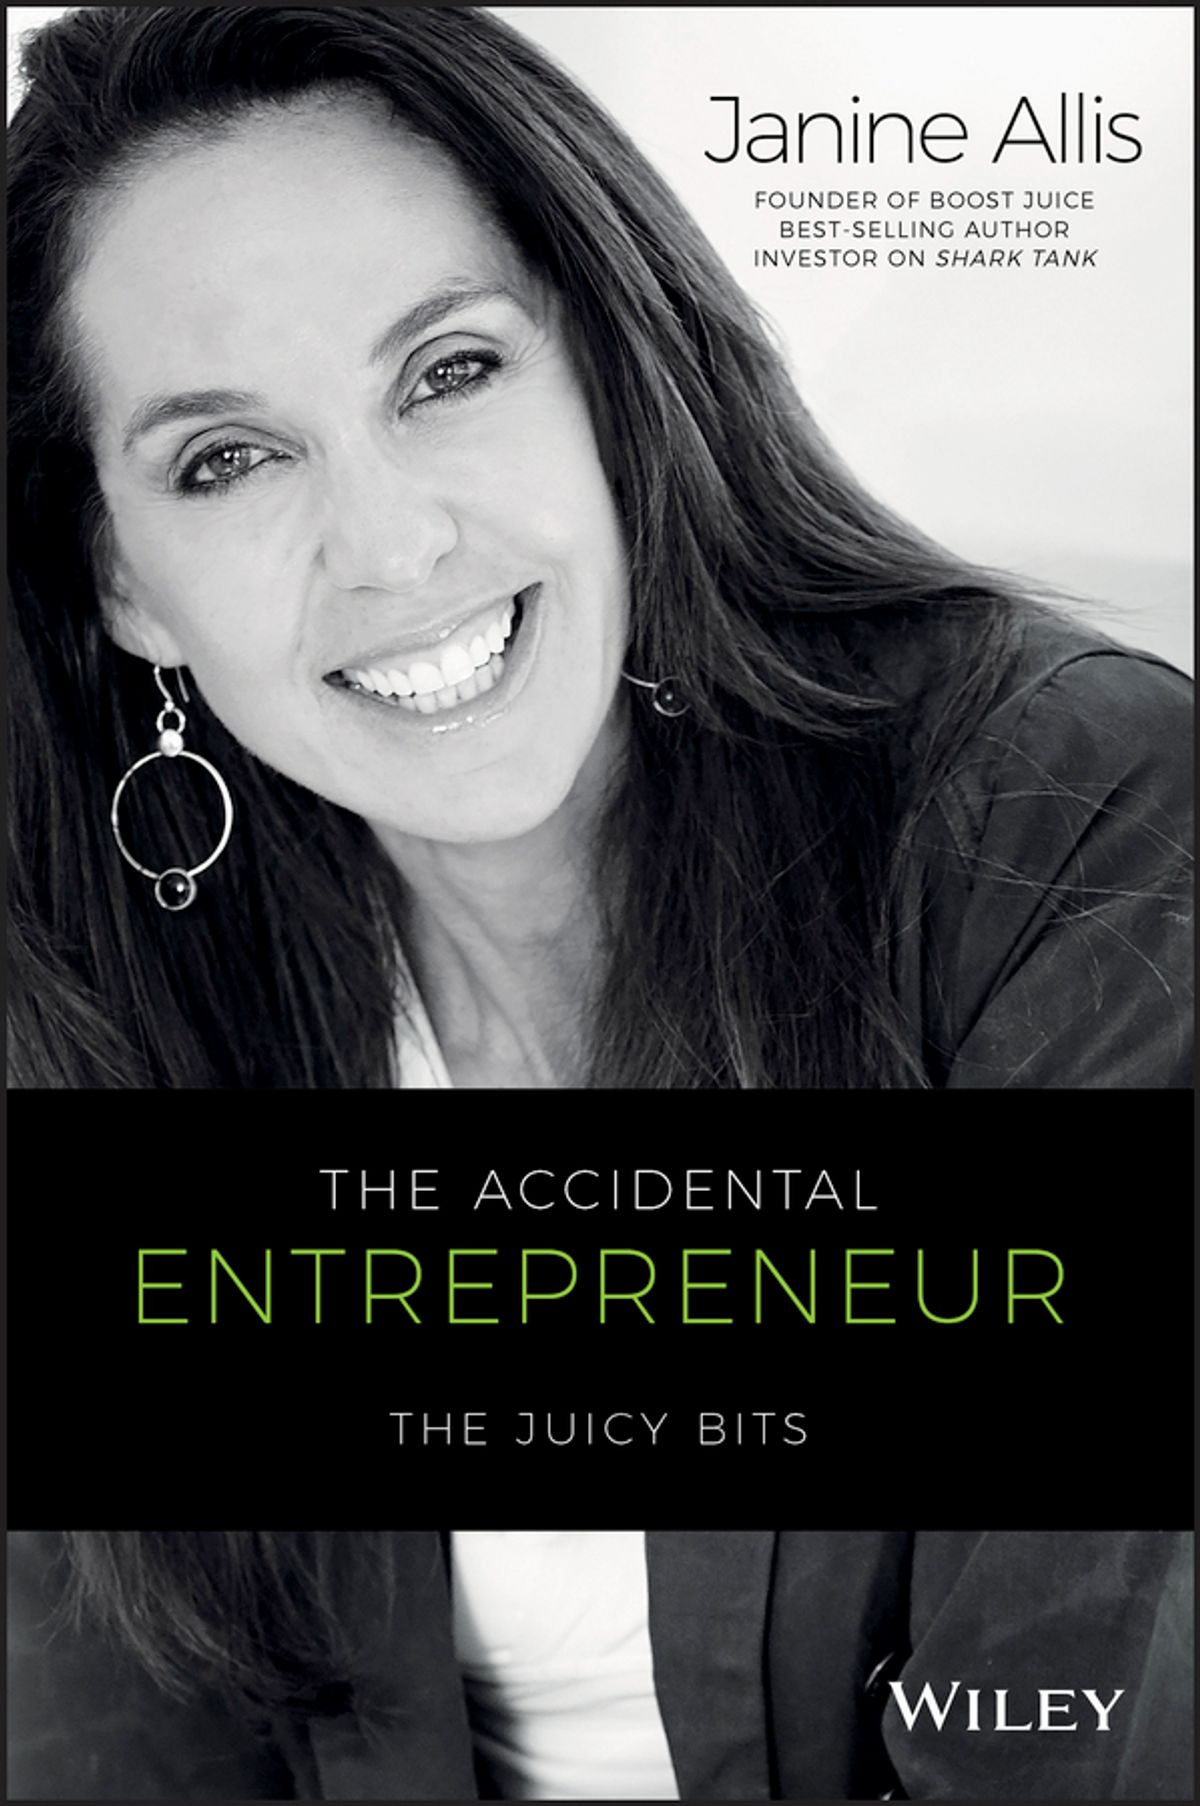 The Accidental Entrepeneur: The Juicy Bits